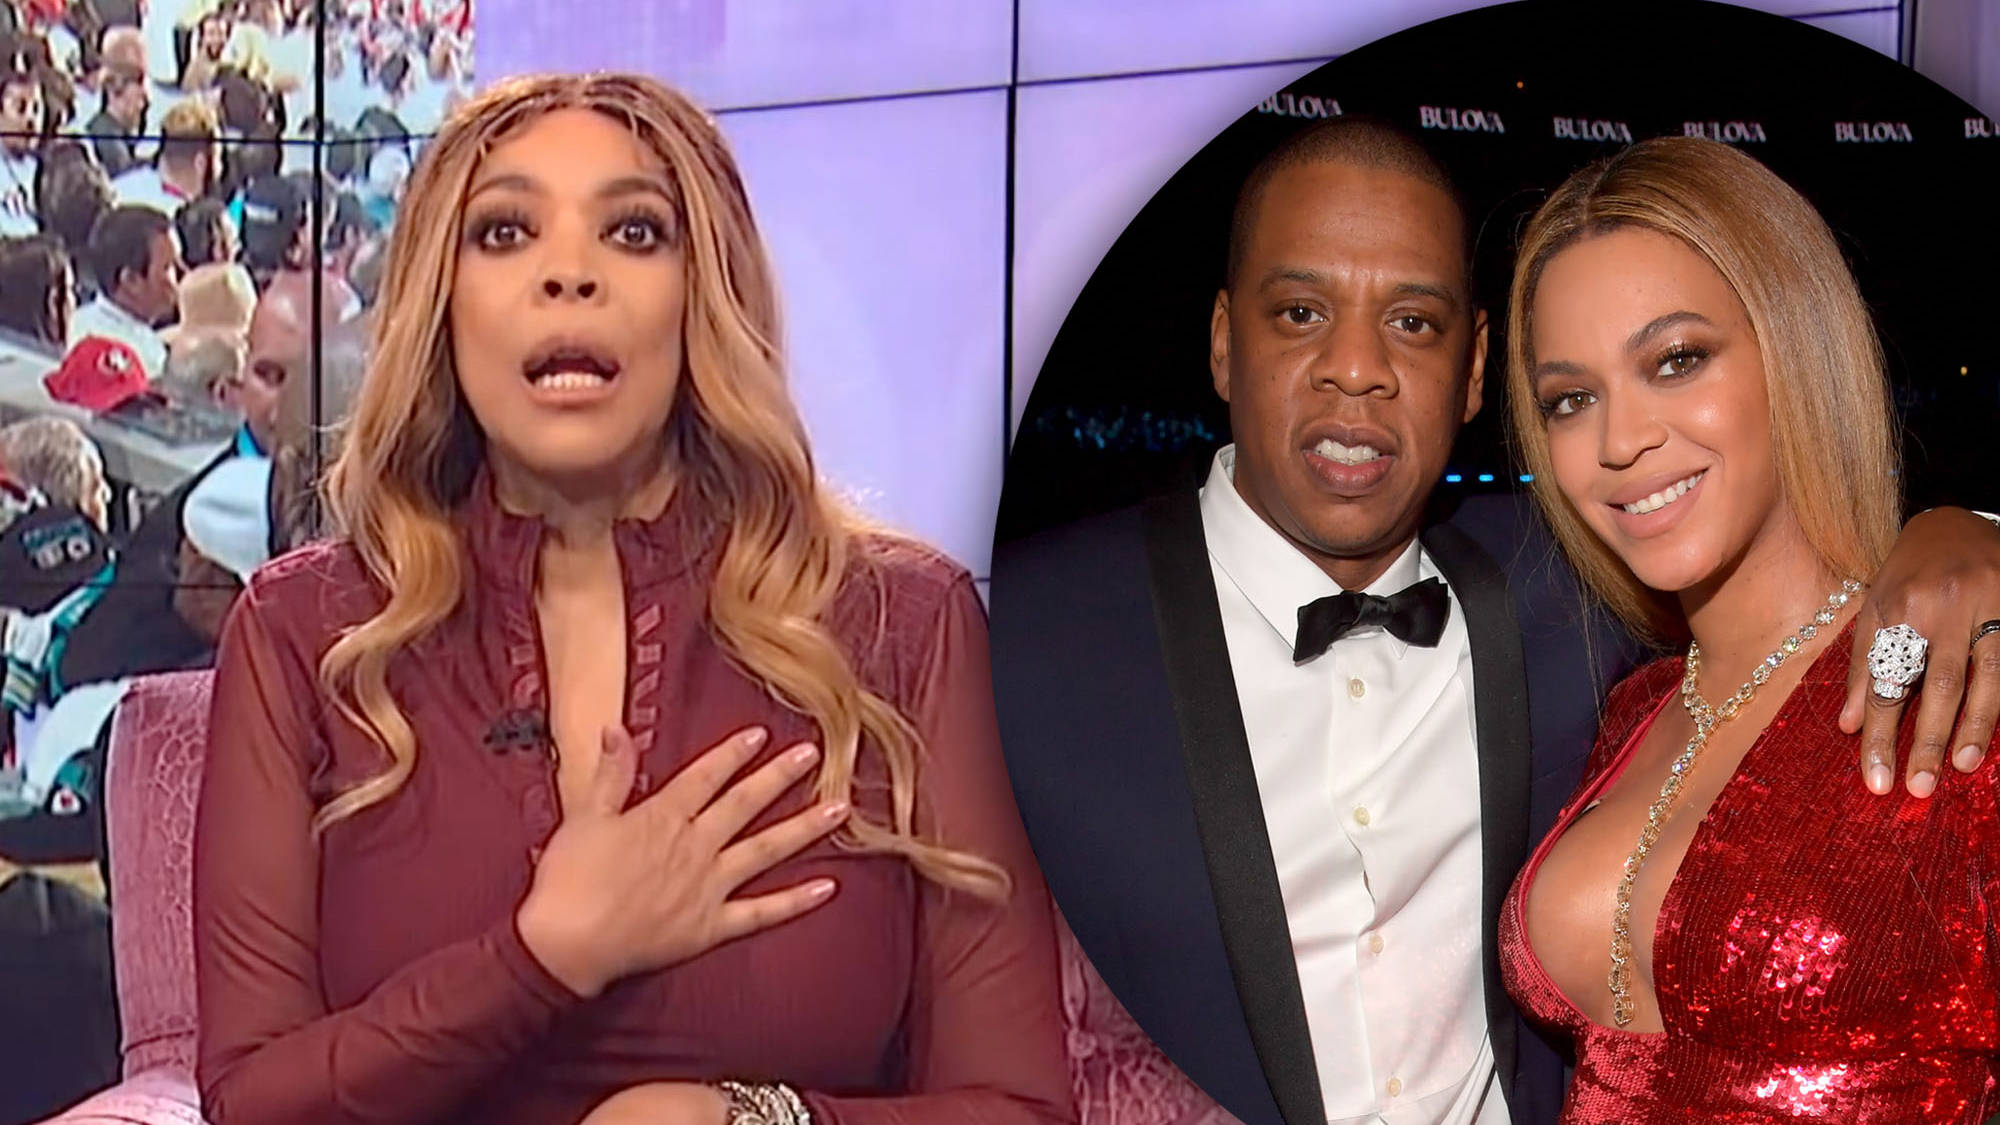 Wendy Williams slams Beyoncé & Jay Z for sitting down during Super Bowl national anthem